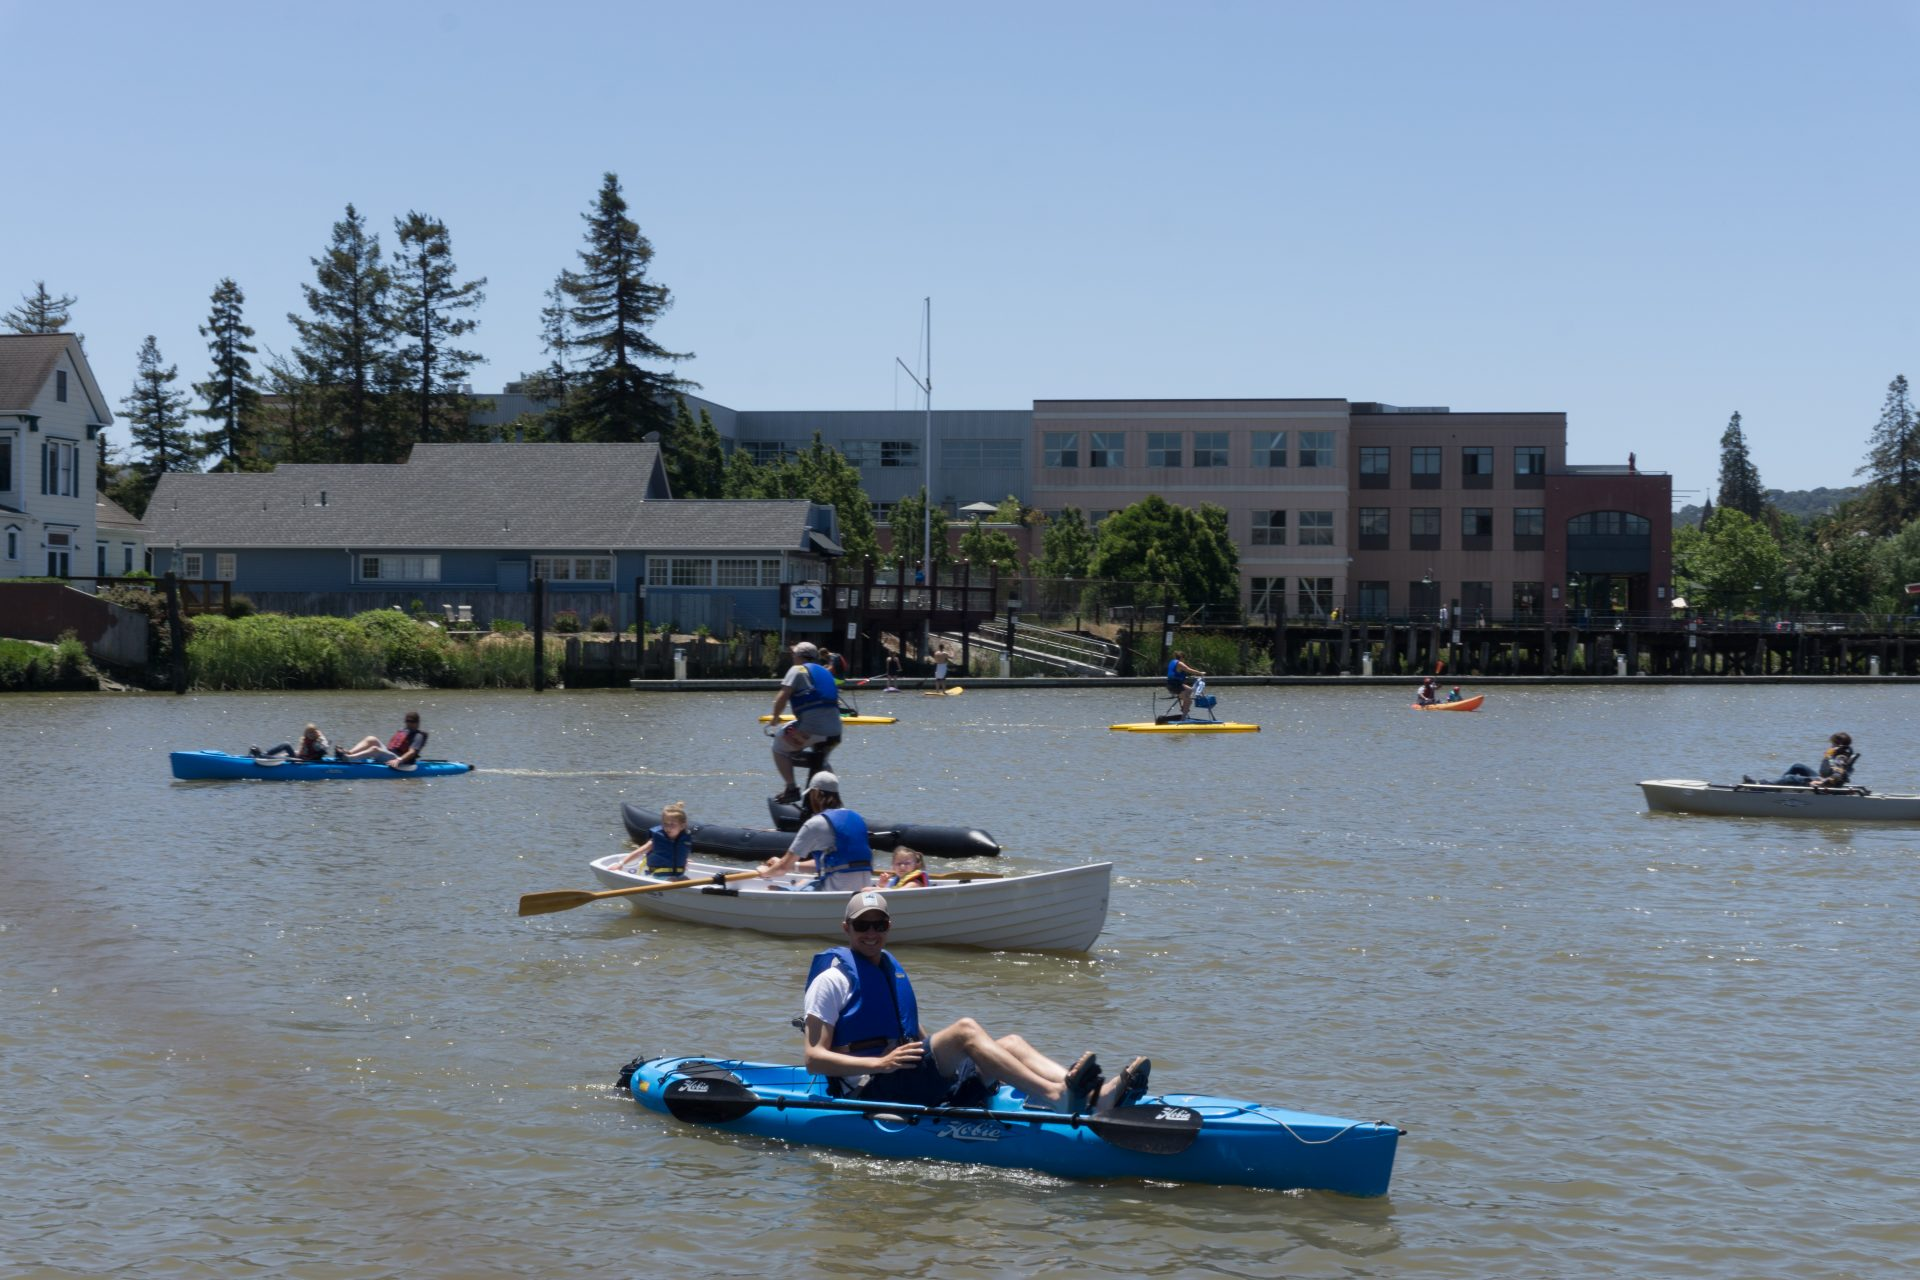 Many kayakers and boaters crossing water in both directions, with buildings in distance